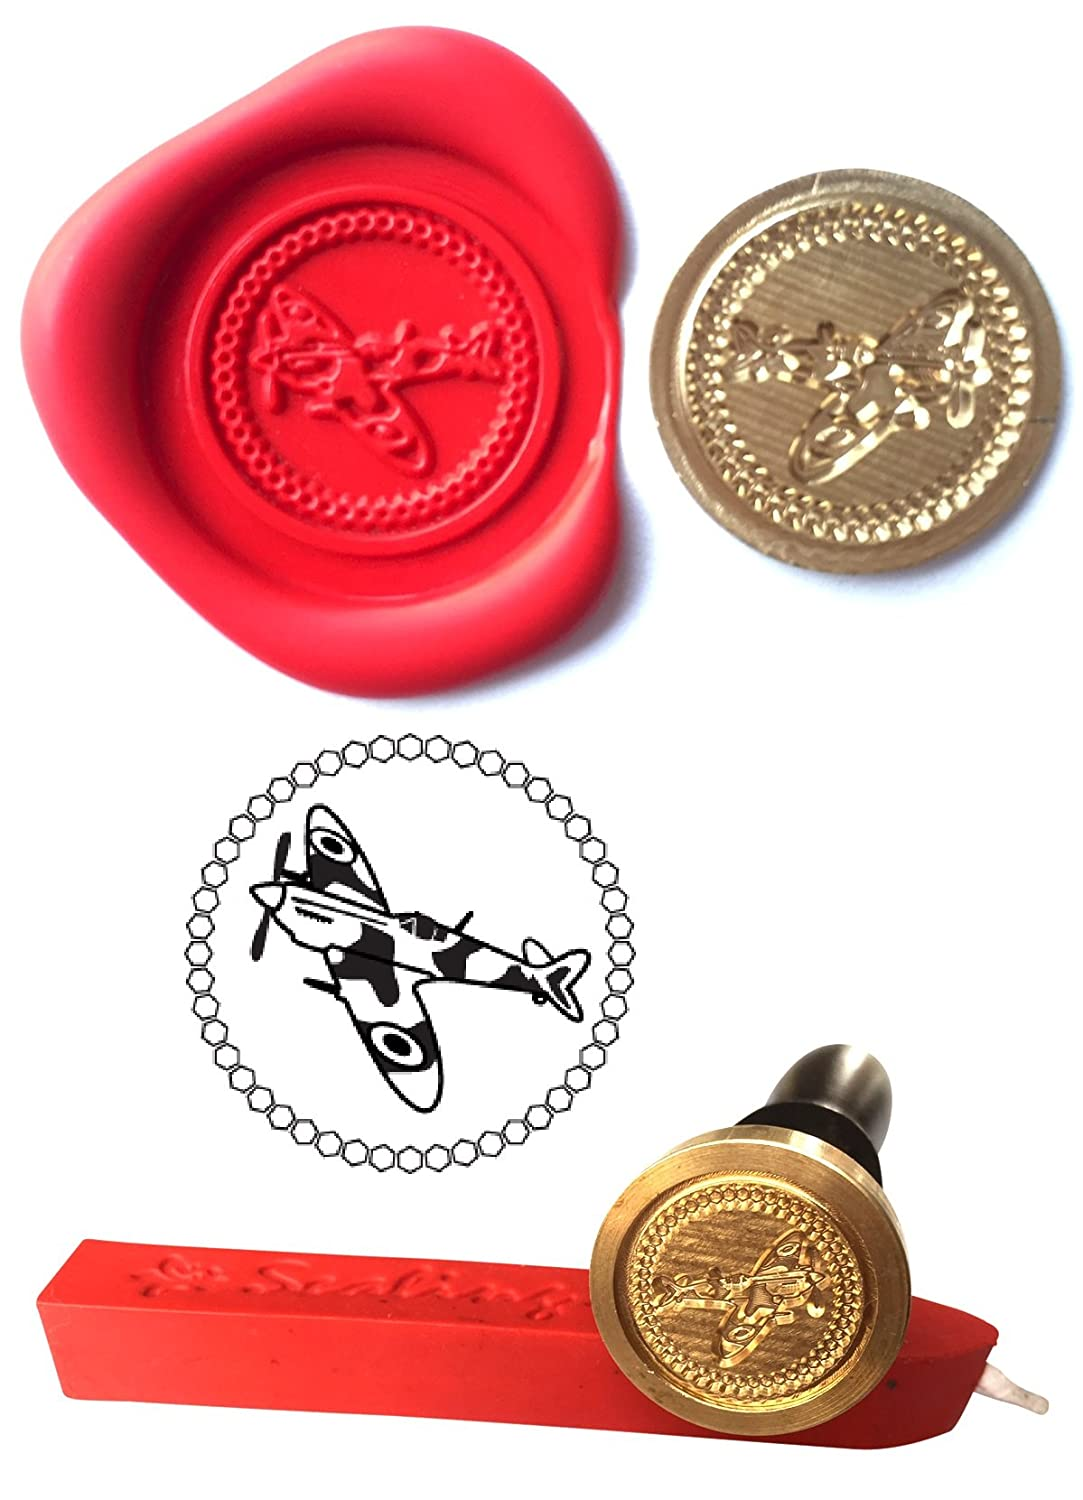 Wax Stamp, SPITFIRE Plane Aircraft Coin Seal and Red Wax Stick XWSC059-KIT (S26) GTR-Gifts